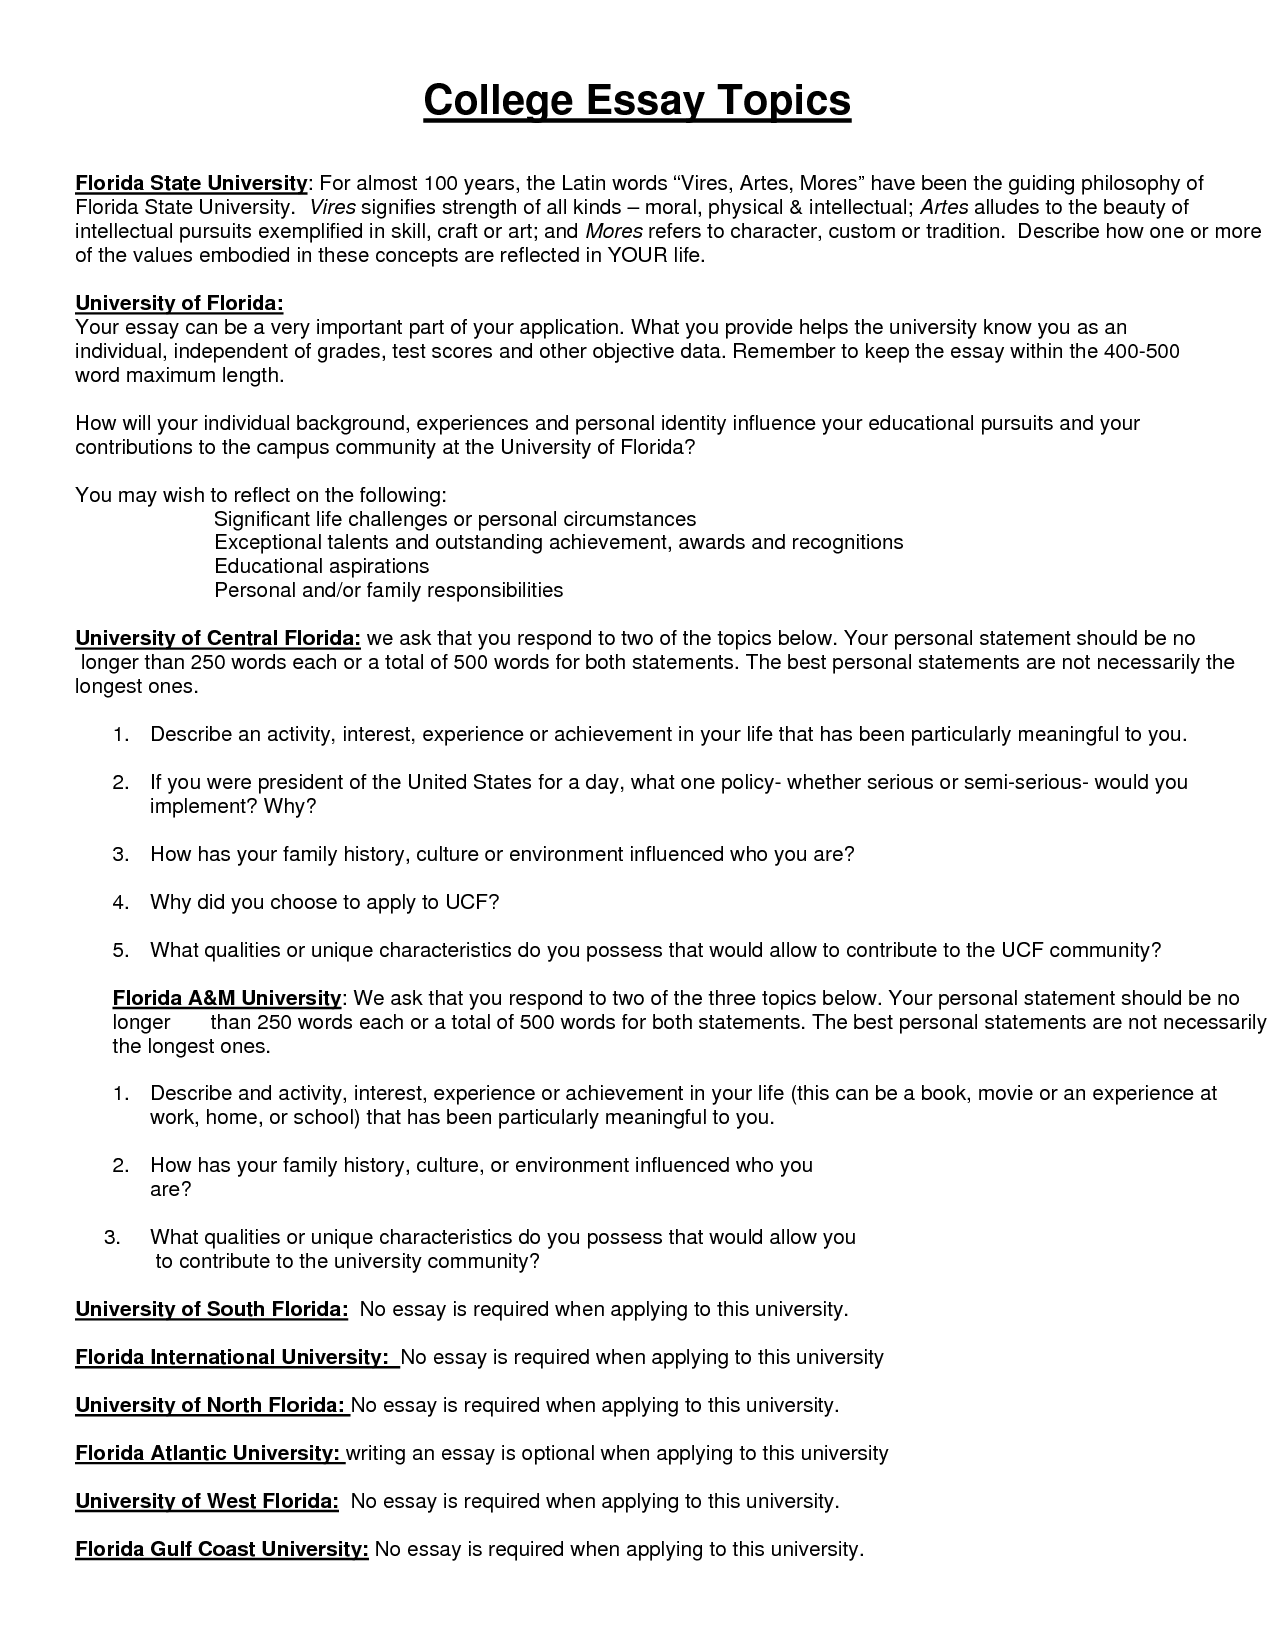 006 Free Topic Essay Resume Examples Templates How To Write Good For College Example Best Surprising Topics Composition High School Students Job Interview Full